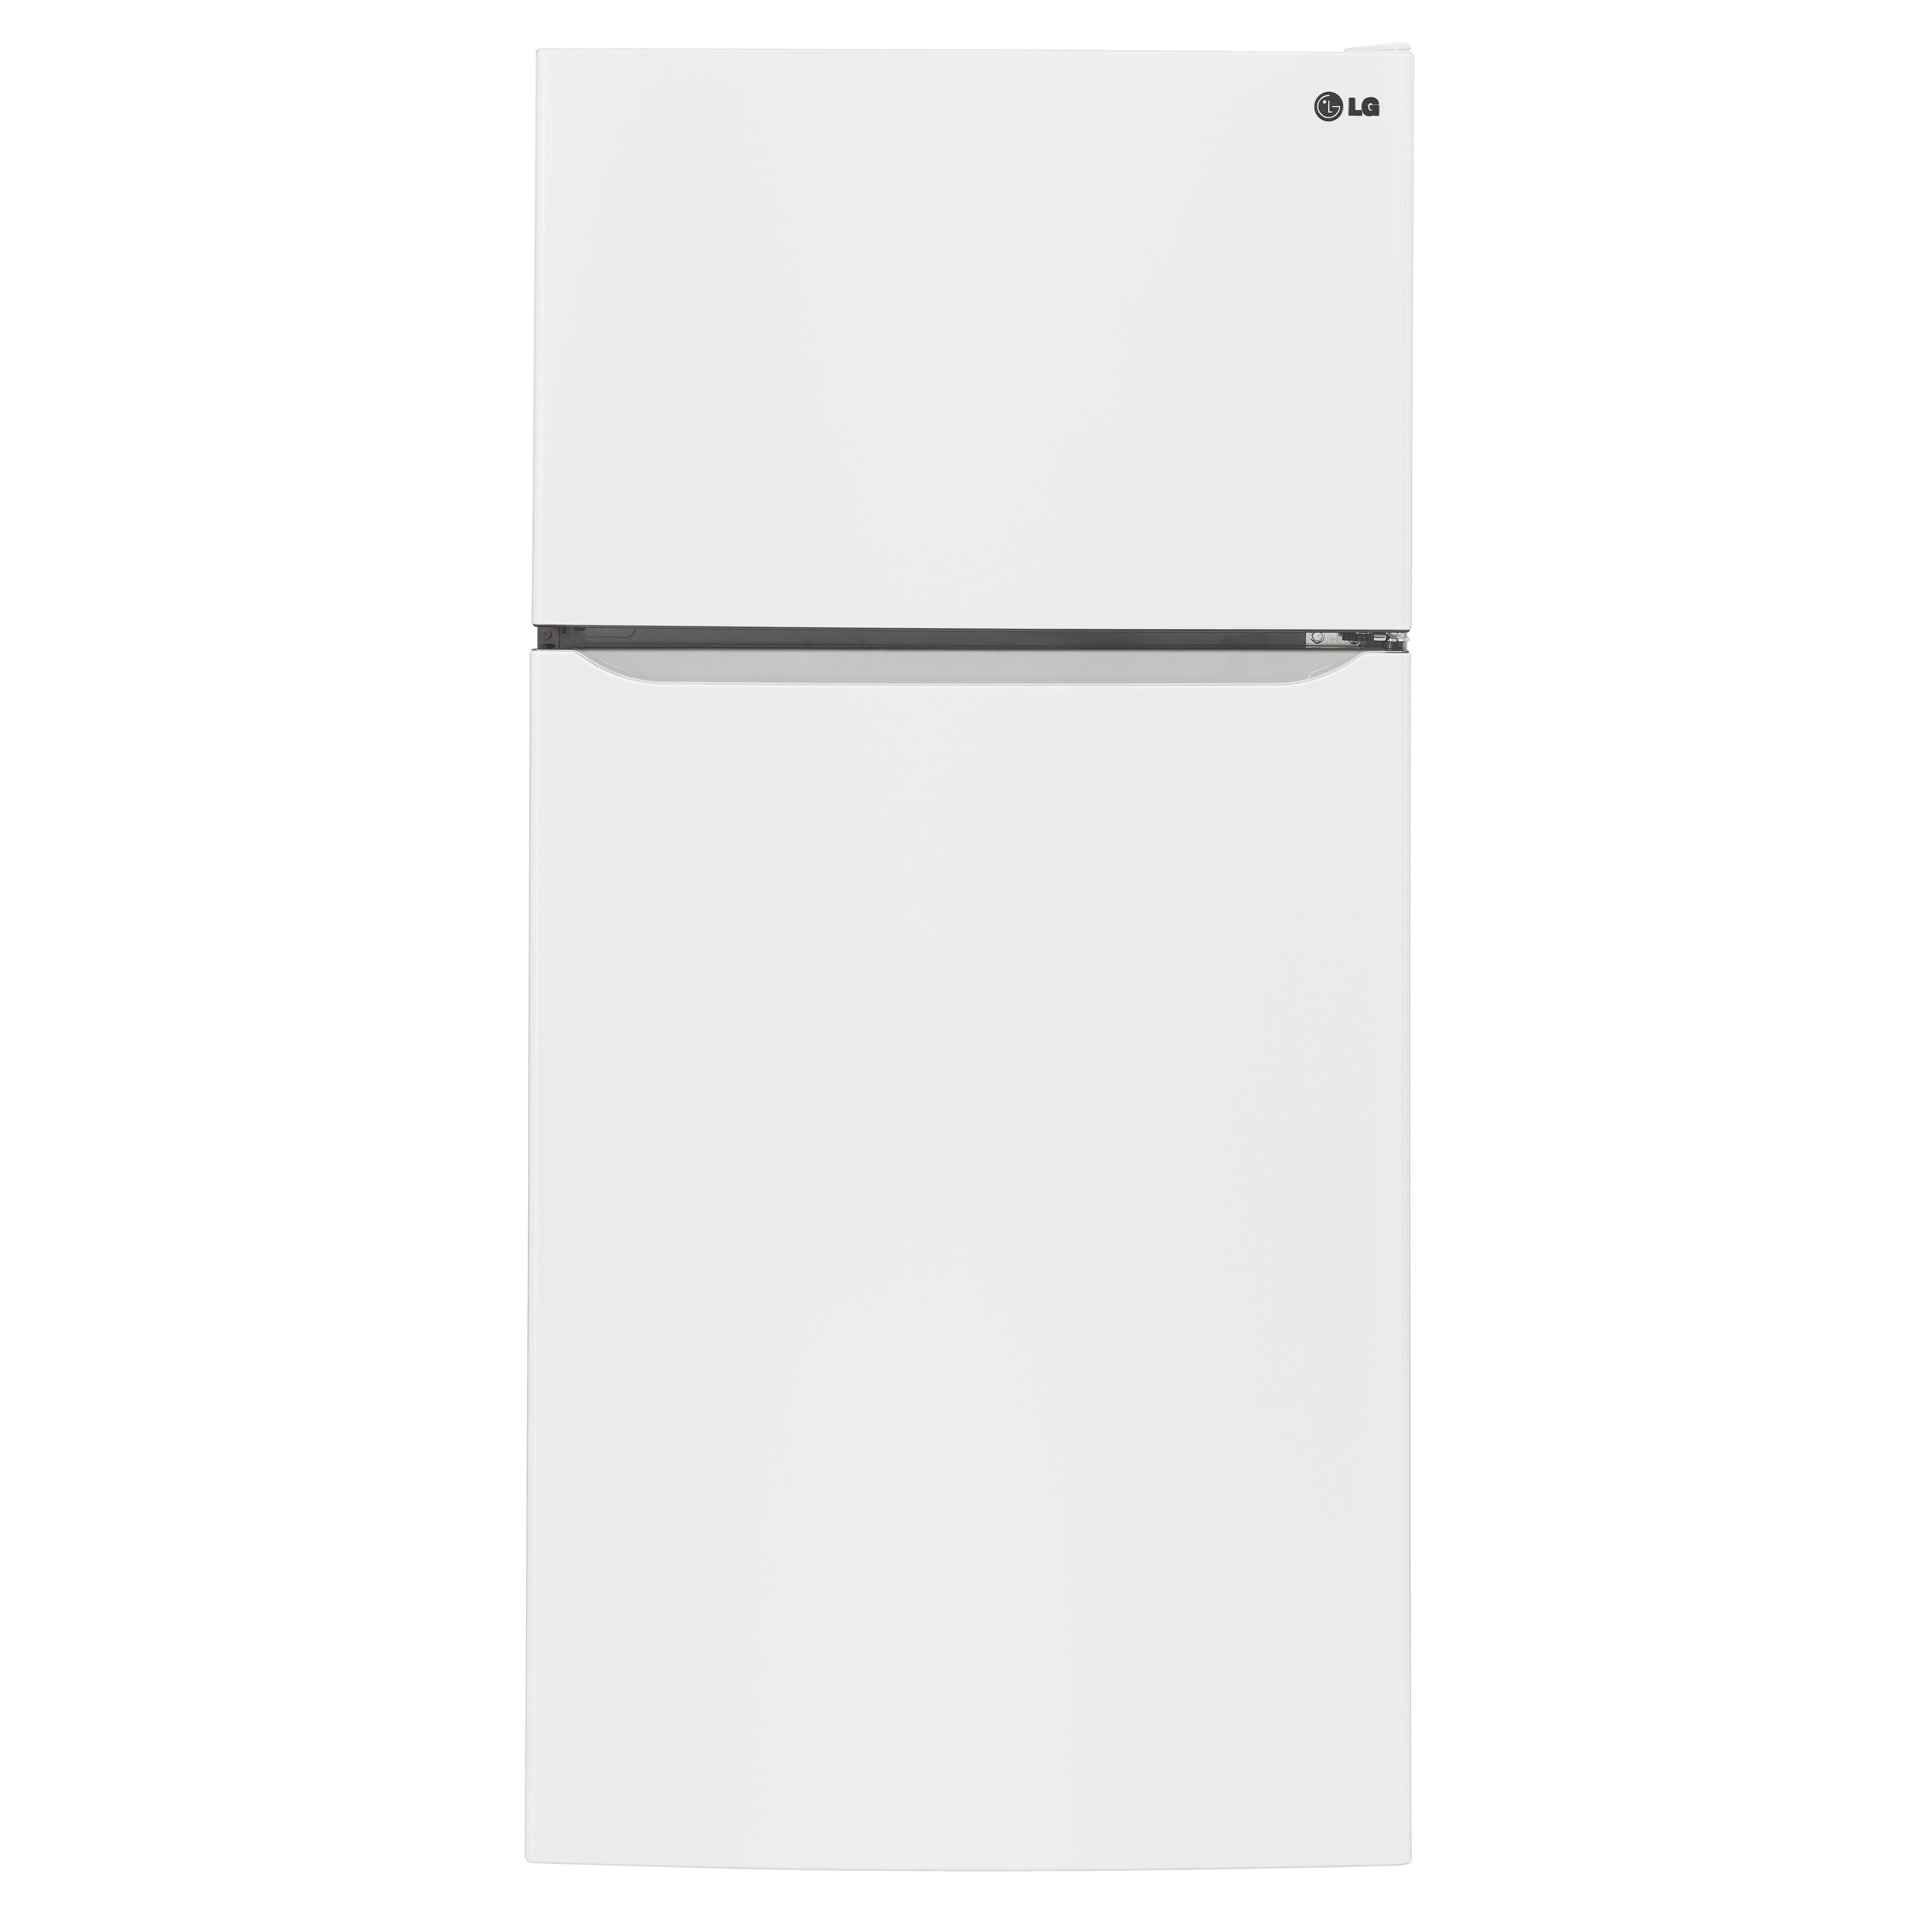 LG Appliances Top-Freezer Refrigerator 24 cu. ft. Top Freezer Refrigerator - Item Number: LTCS24223W